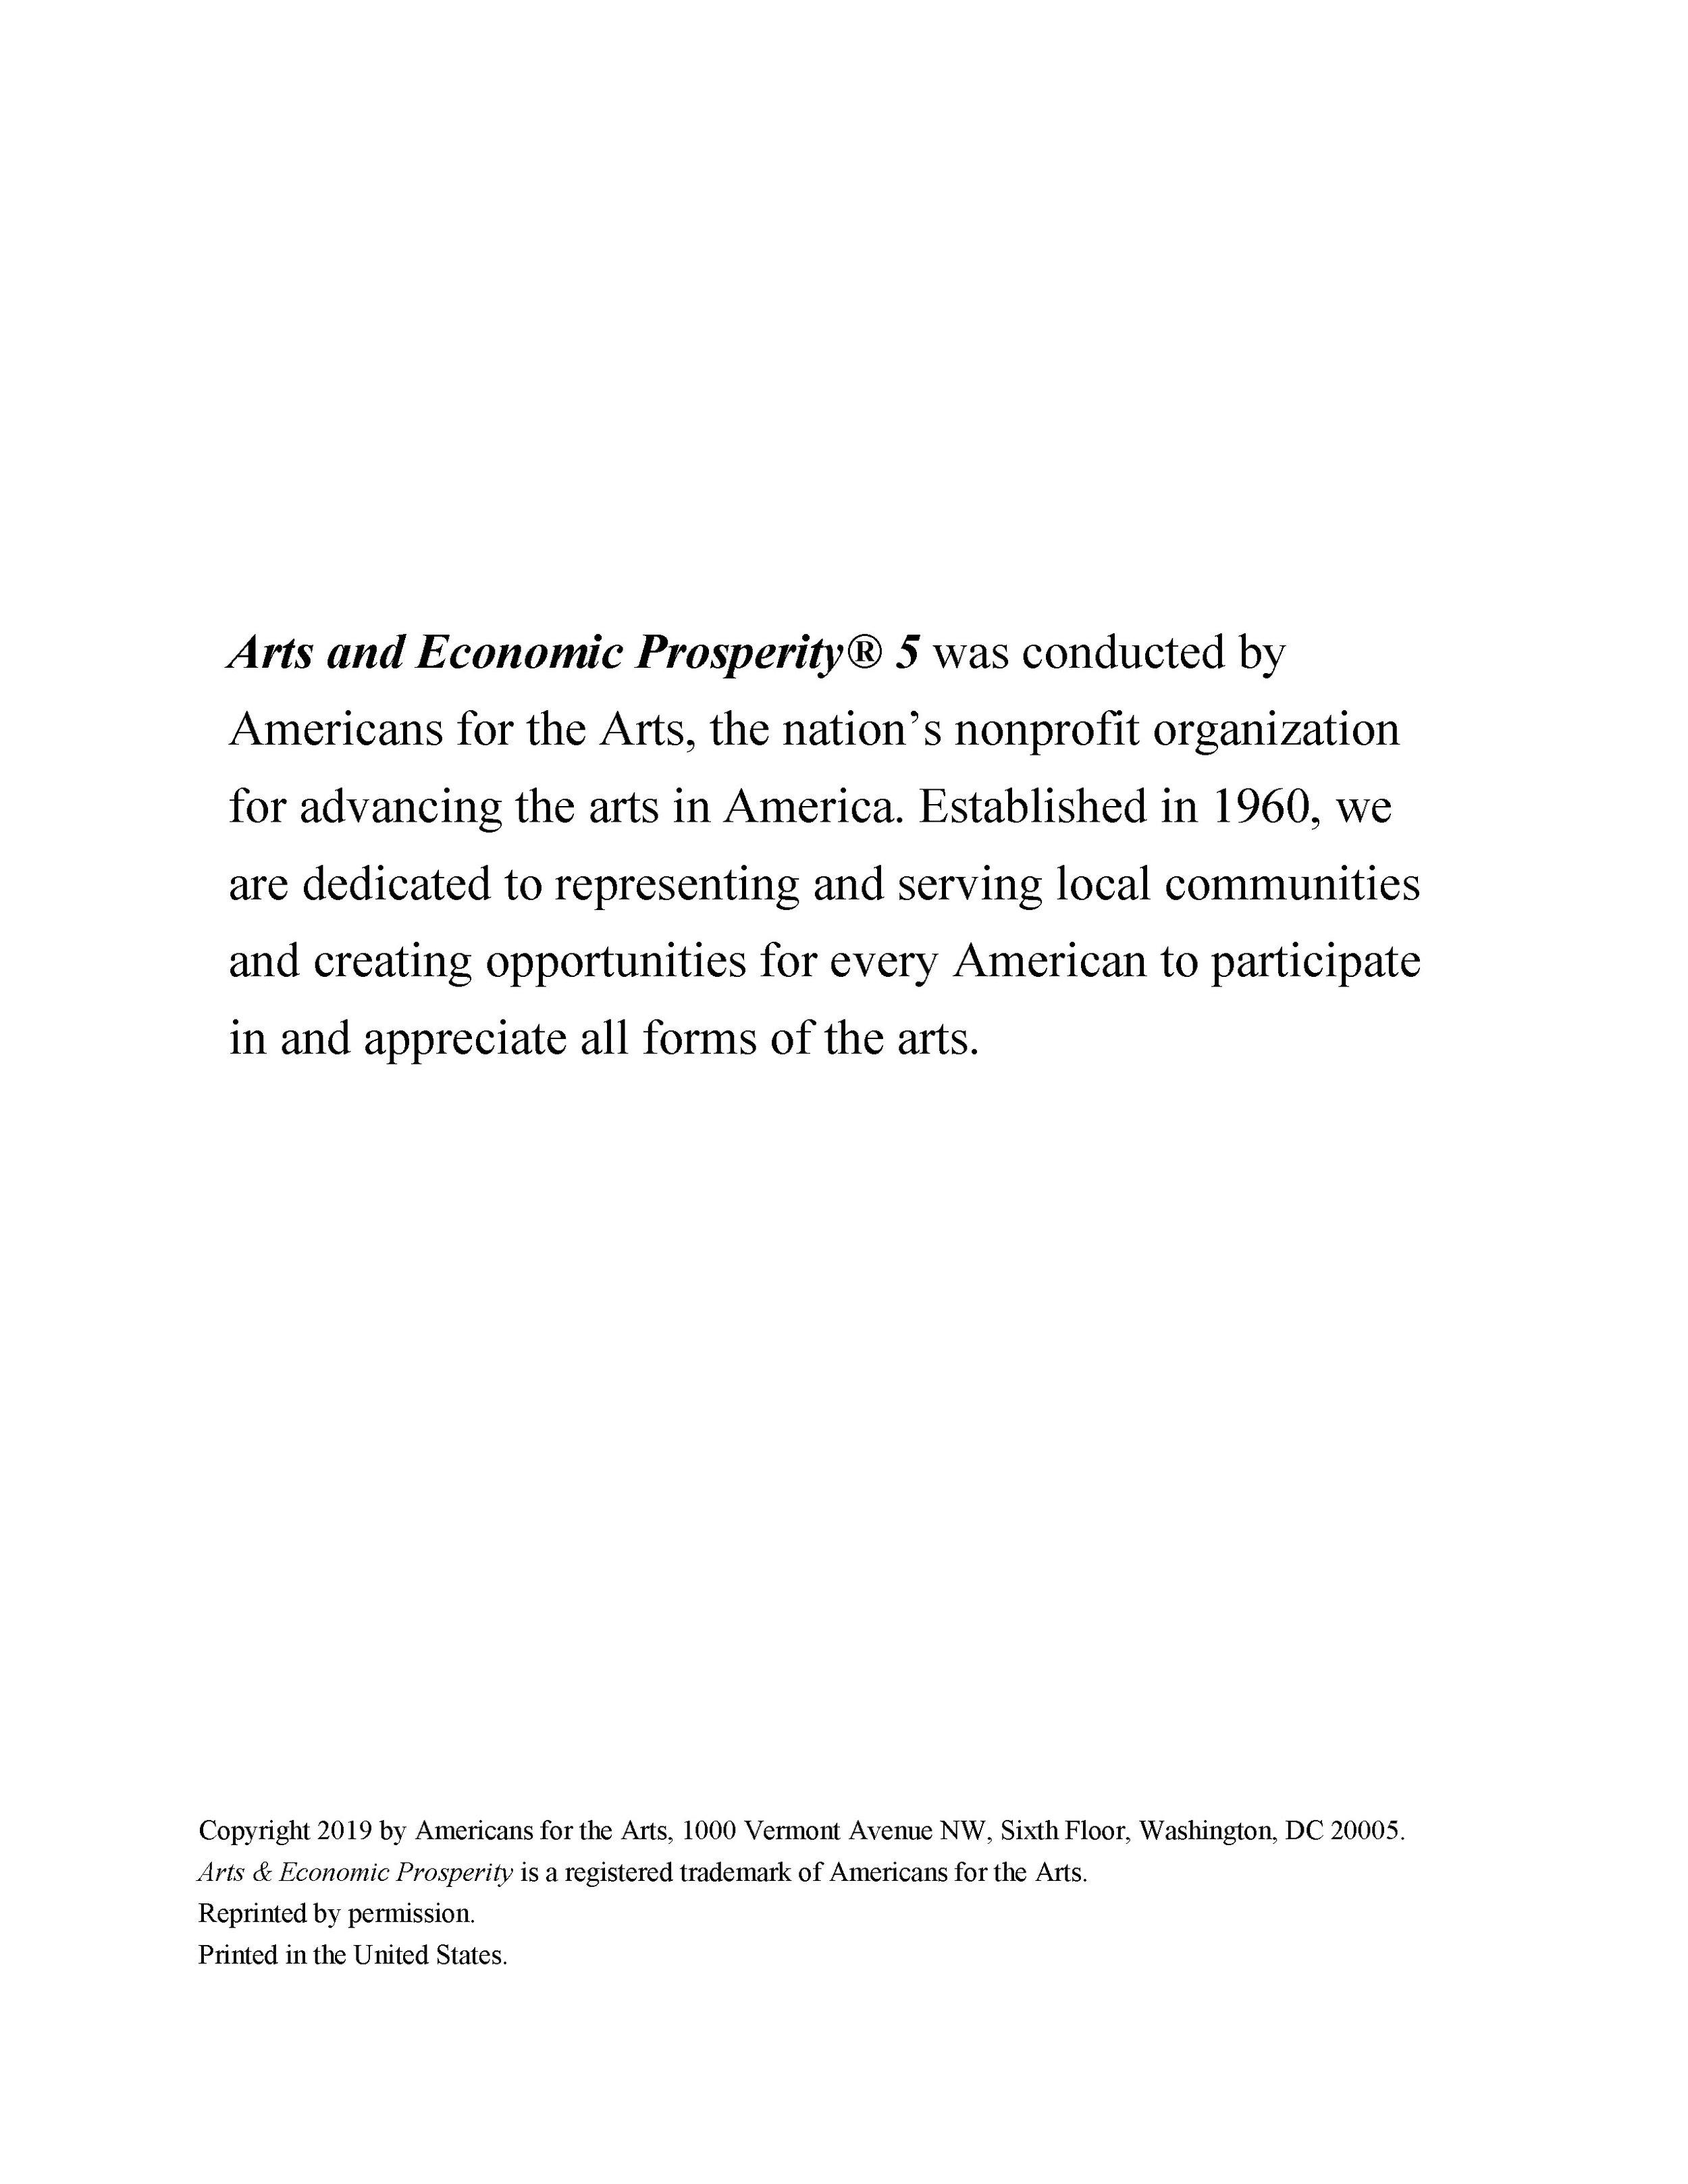 Arts & Economic Prosperity in Nevada County_Page_02.jpg